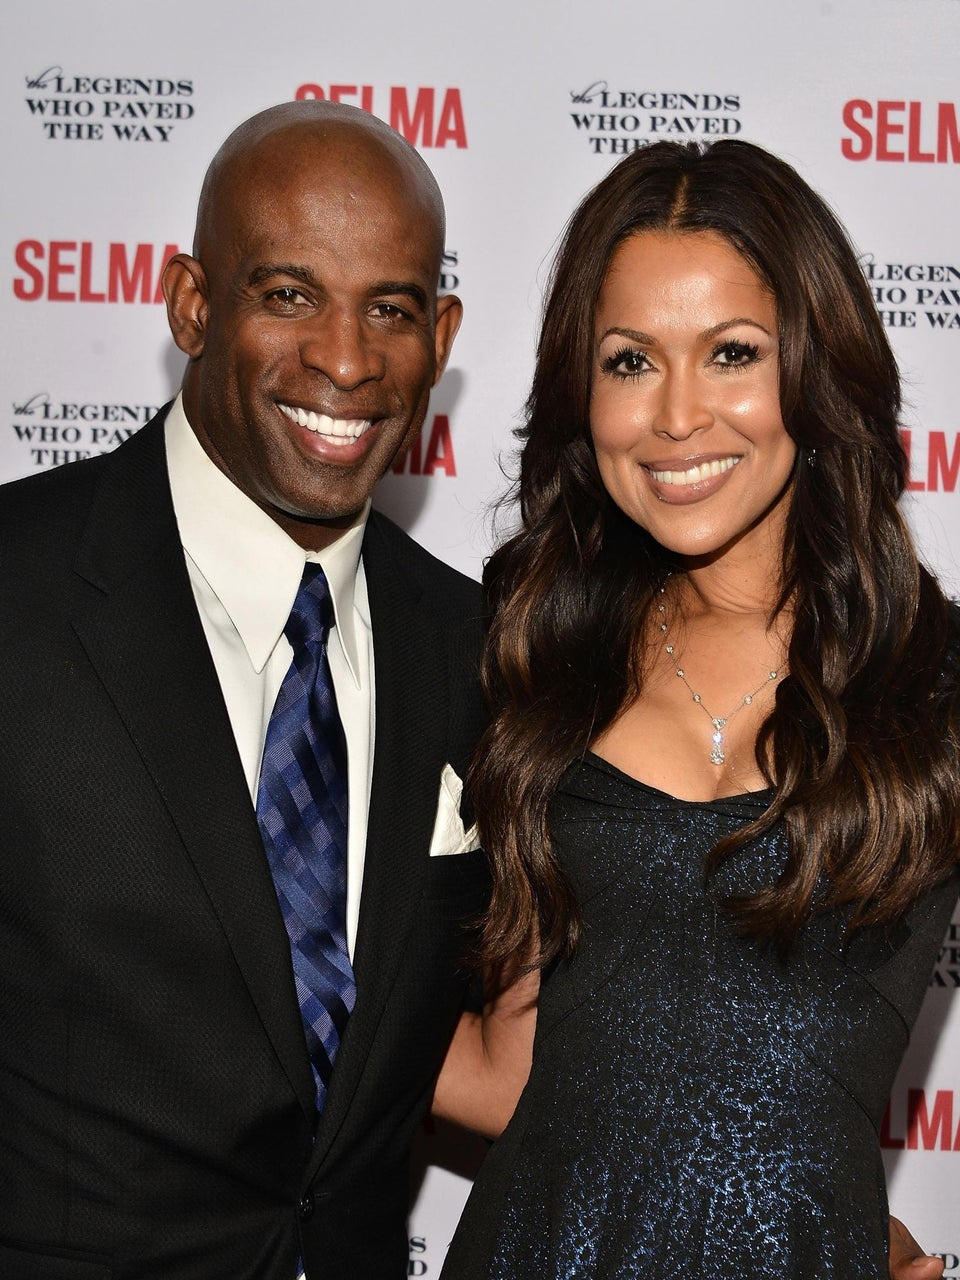 The Real Housewives of the Super Bowl 50: Tracey Edmonds Talks Deion Sanders, Alimony and Dancing